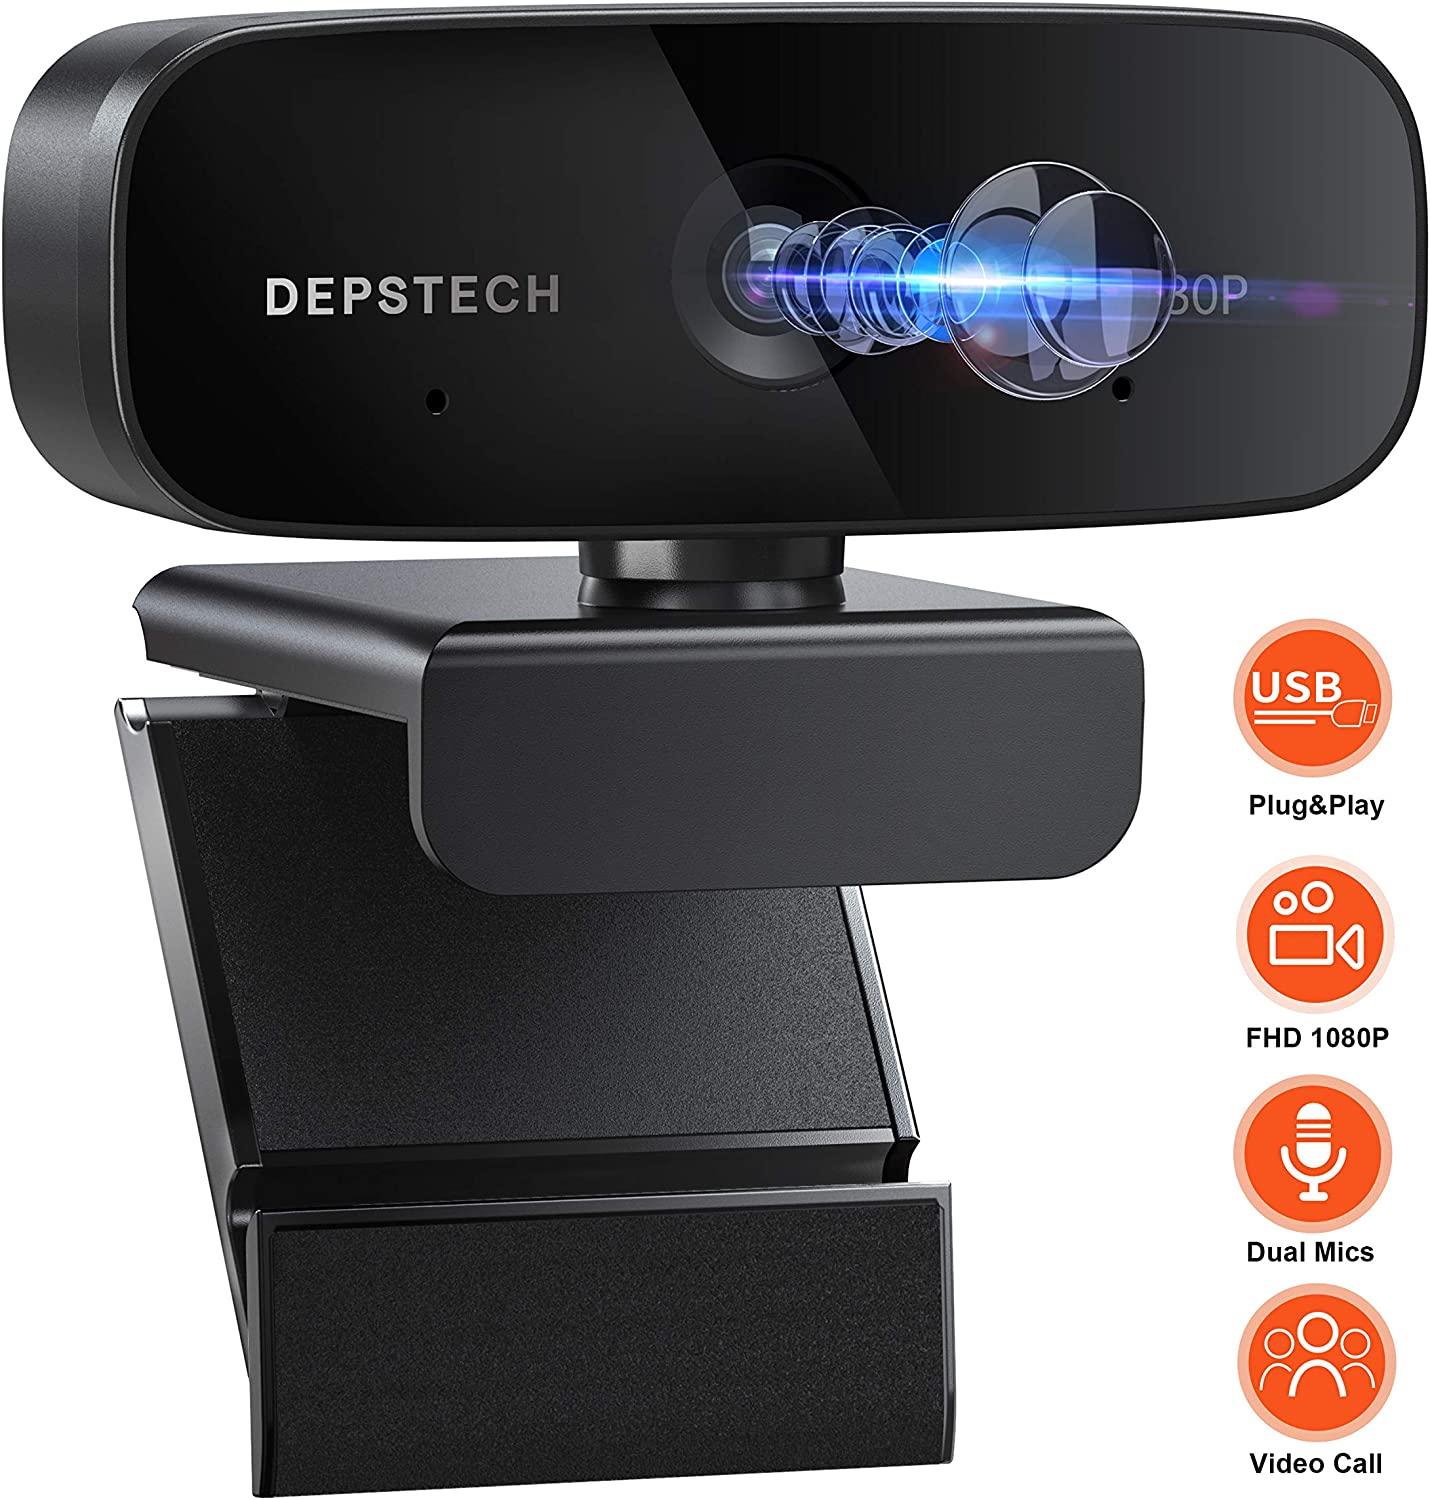 Webcam with Microphone, DEPSTECH 1080P Desktop Laptop Computer Web Camera with Stereo Microphone, USB Plug and Play,for Video Streaming, Conference, Gaming, Online Classes